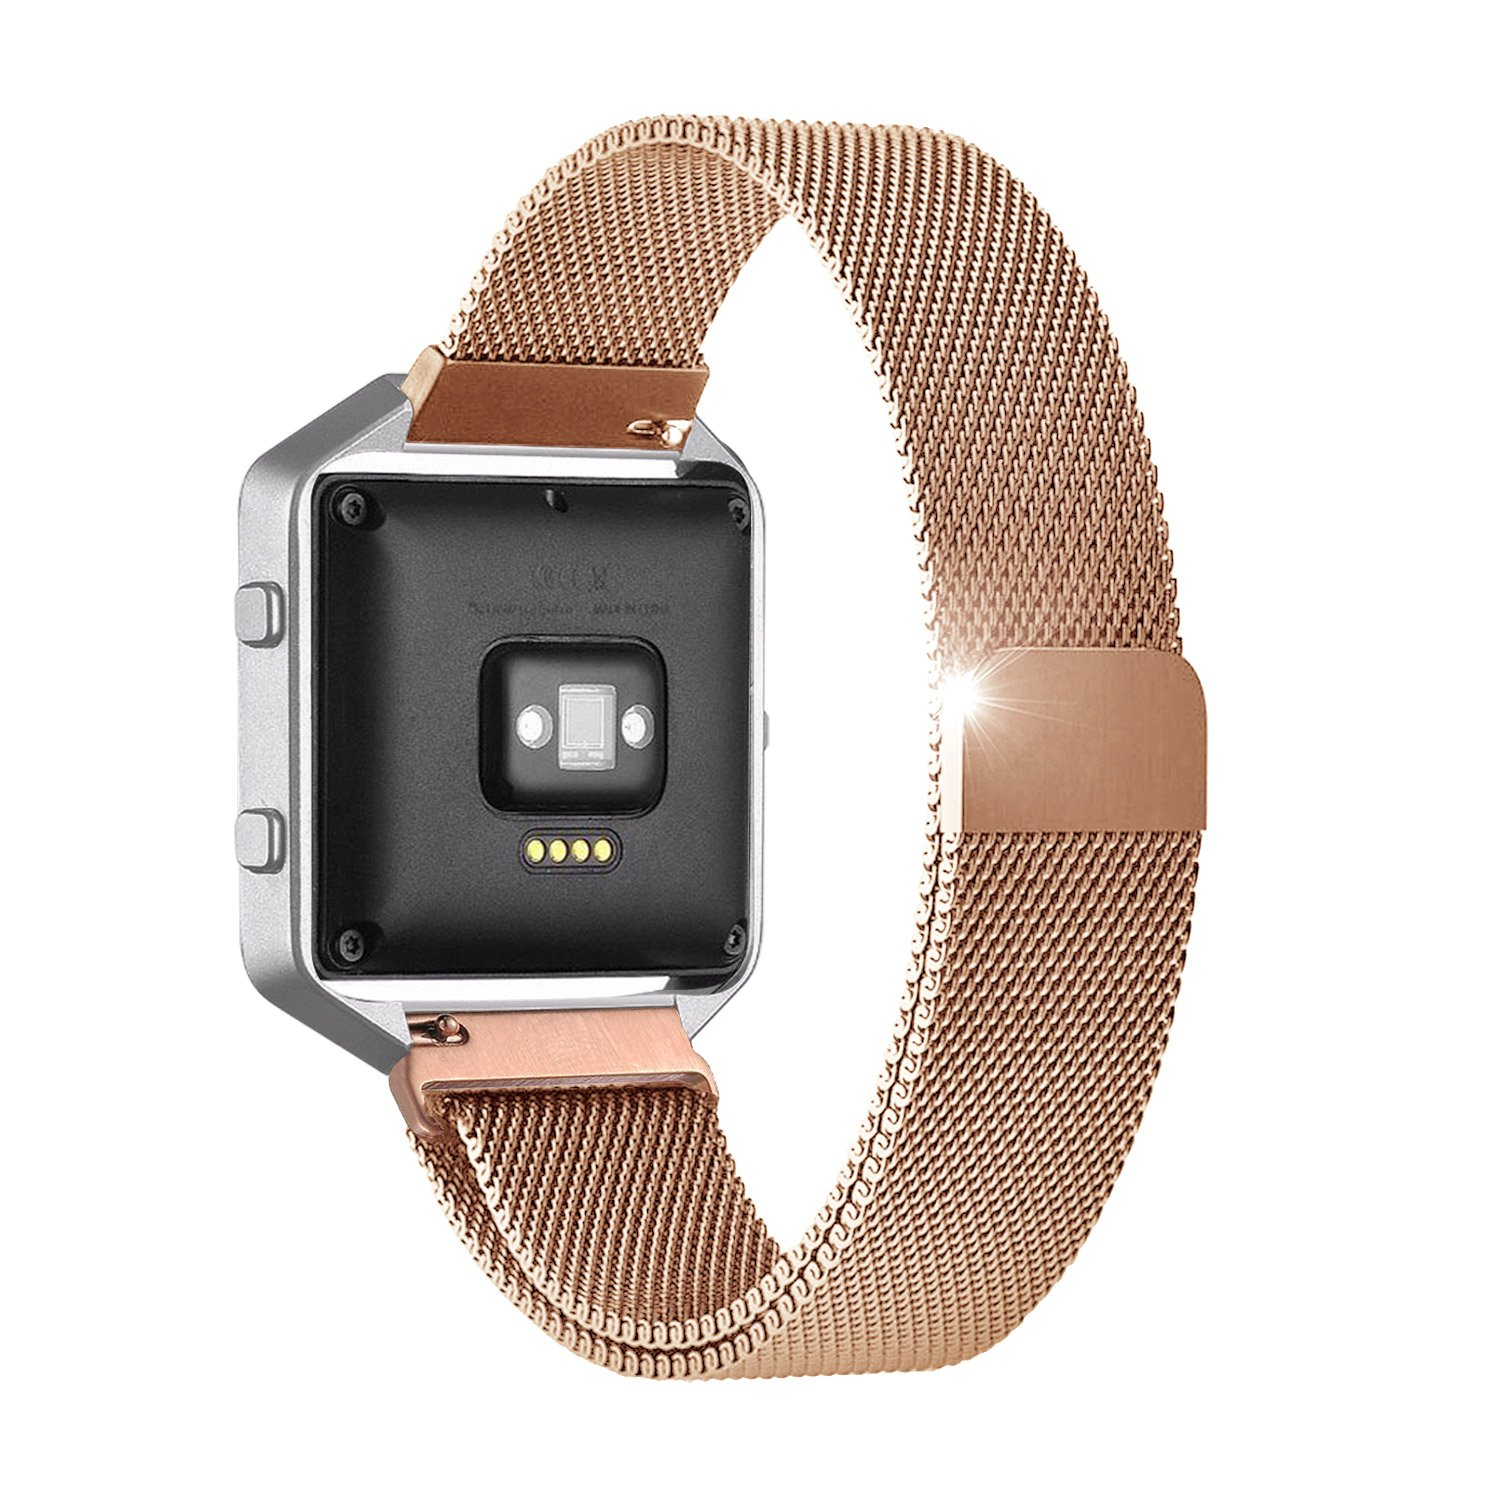 "Fitbit Blaze Accessories Band Large, UMTele Milanese Loop Stainless Steel Mesh Bracelet Metal Replacement Strap Band with Unique Magnet Lock for Fitbit Blaze Smart Fitness Watch Rose Gold (6.1""-9.3"")"